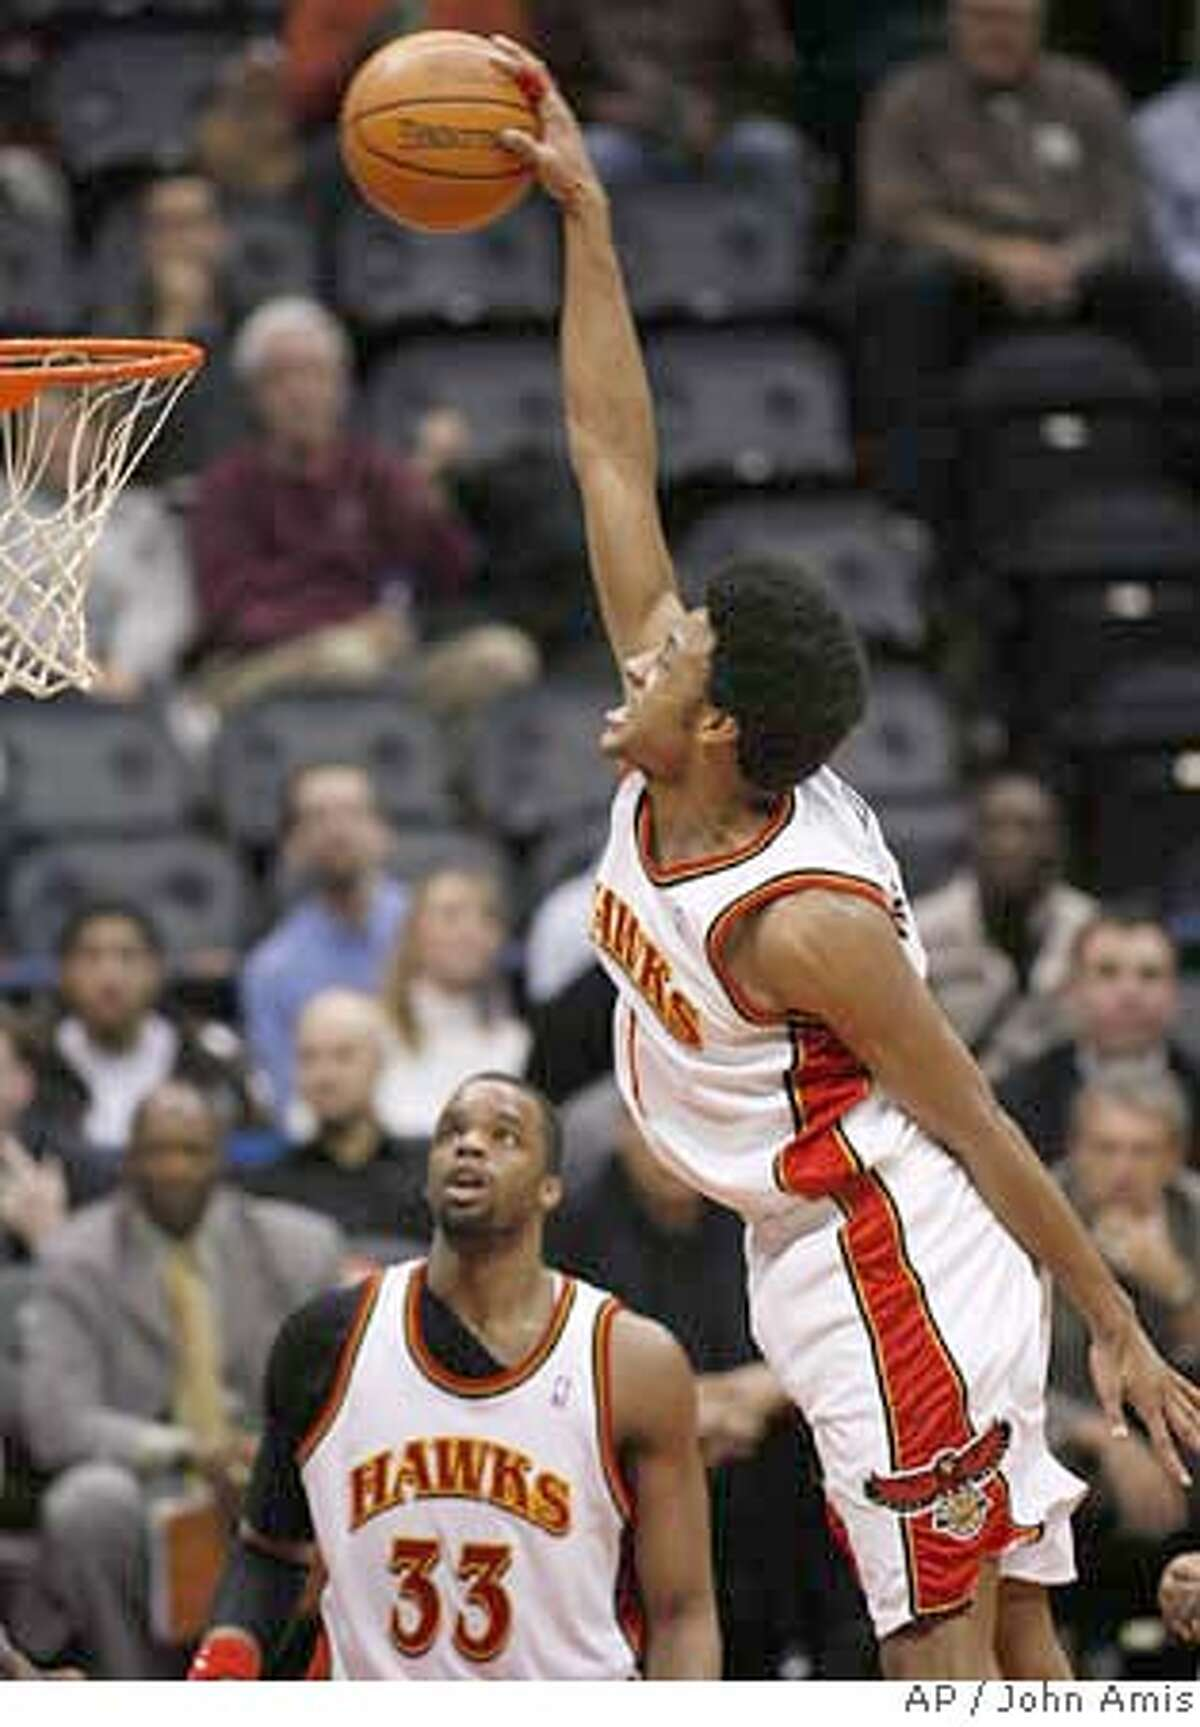 Atlanta Hawks' Josh Childress goes high above the basket before dunking, as forward Shelden Williams (33) looks on during the second half of an NBA basketball game against the Golden State Warriors on Wednesday, Jan. 31, 2007, in Atlanta. (AP Photo/John Amis) EFE OUT